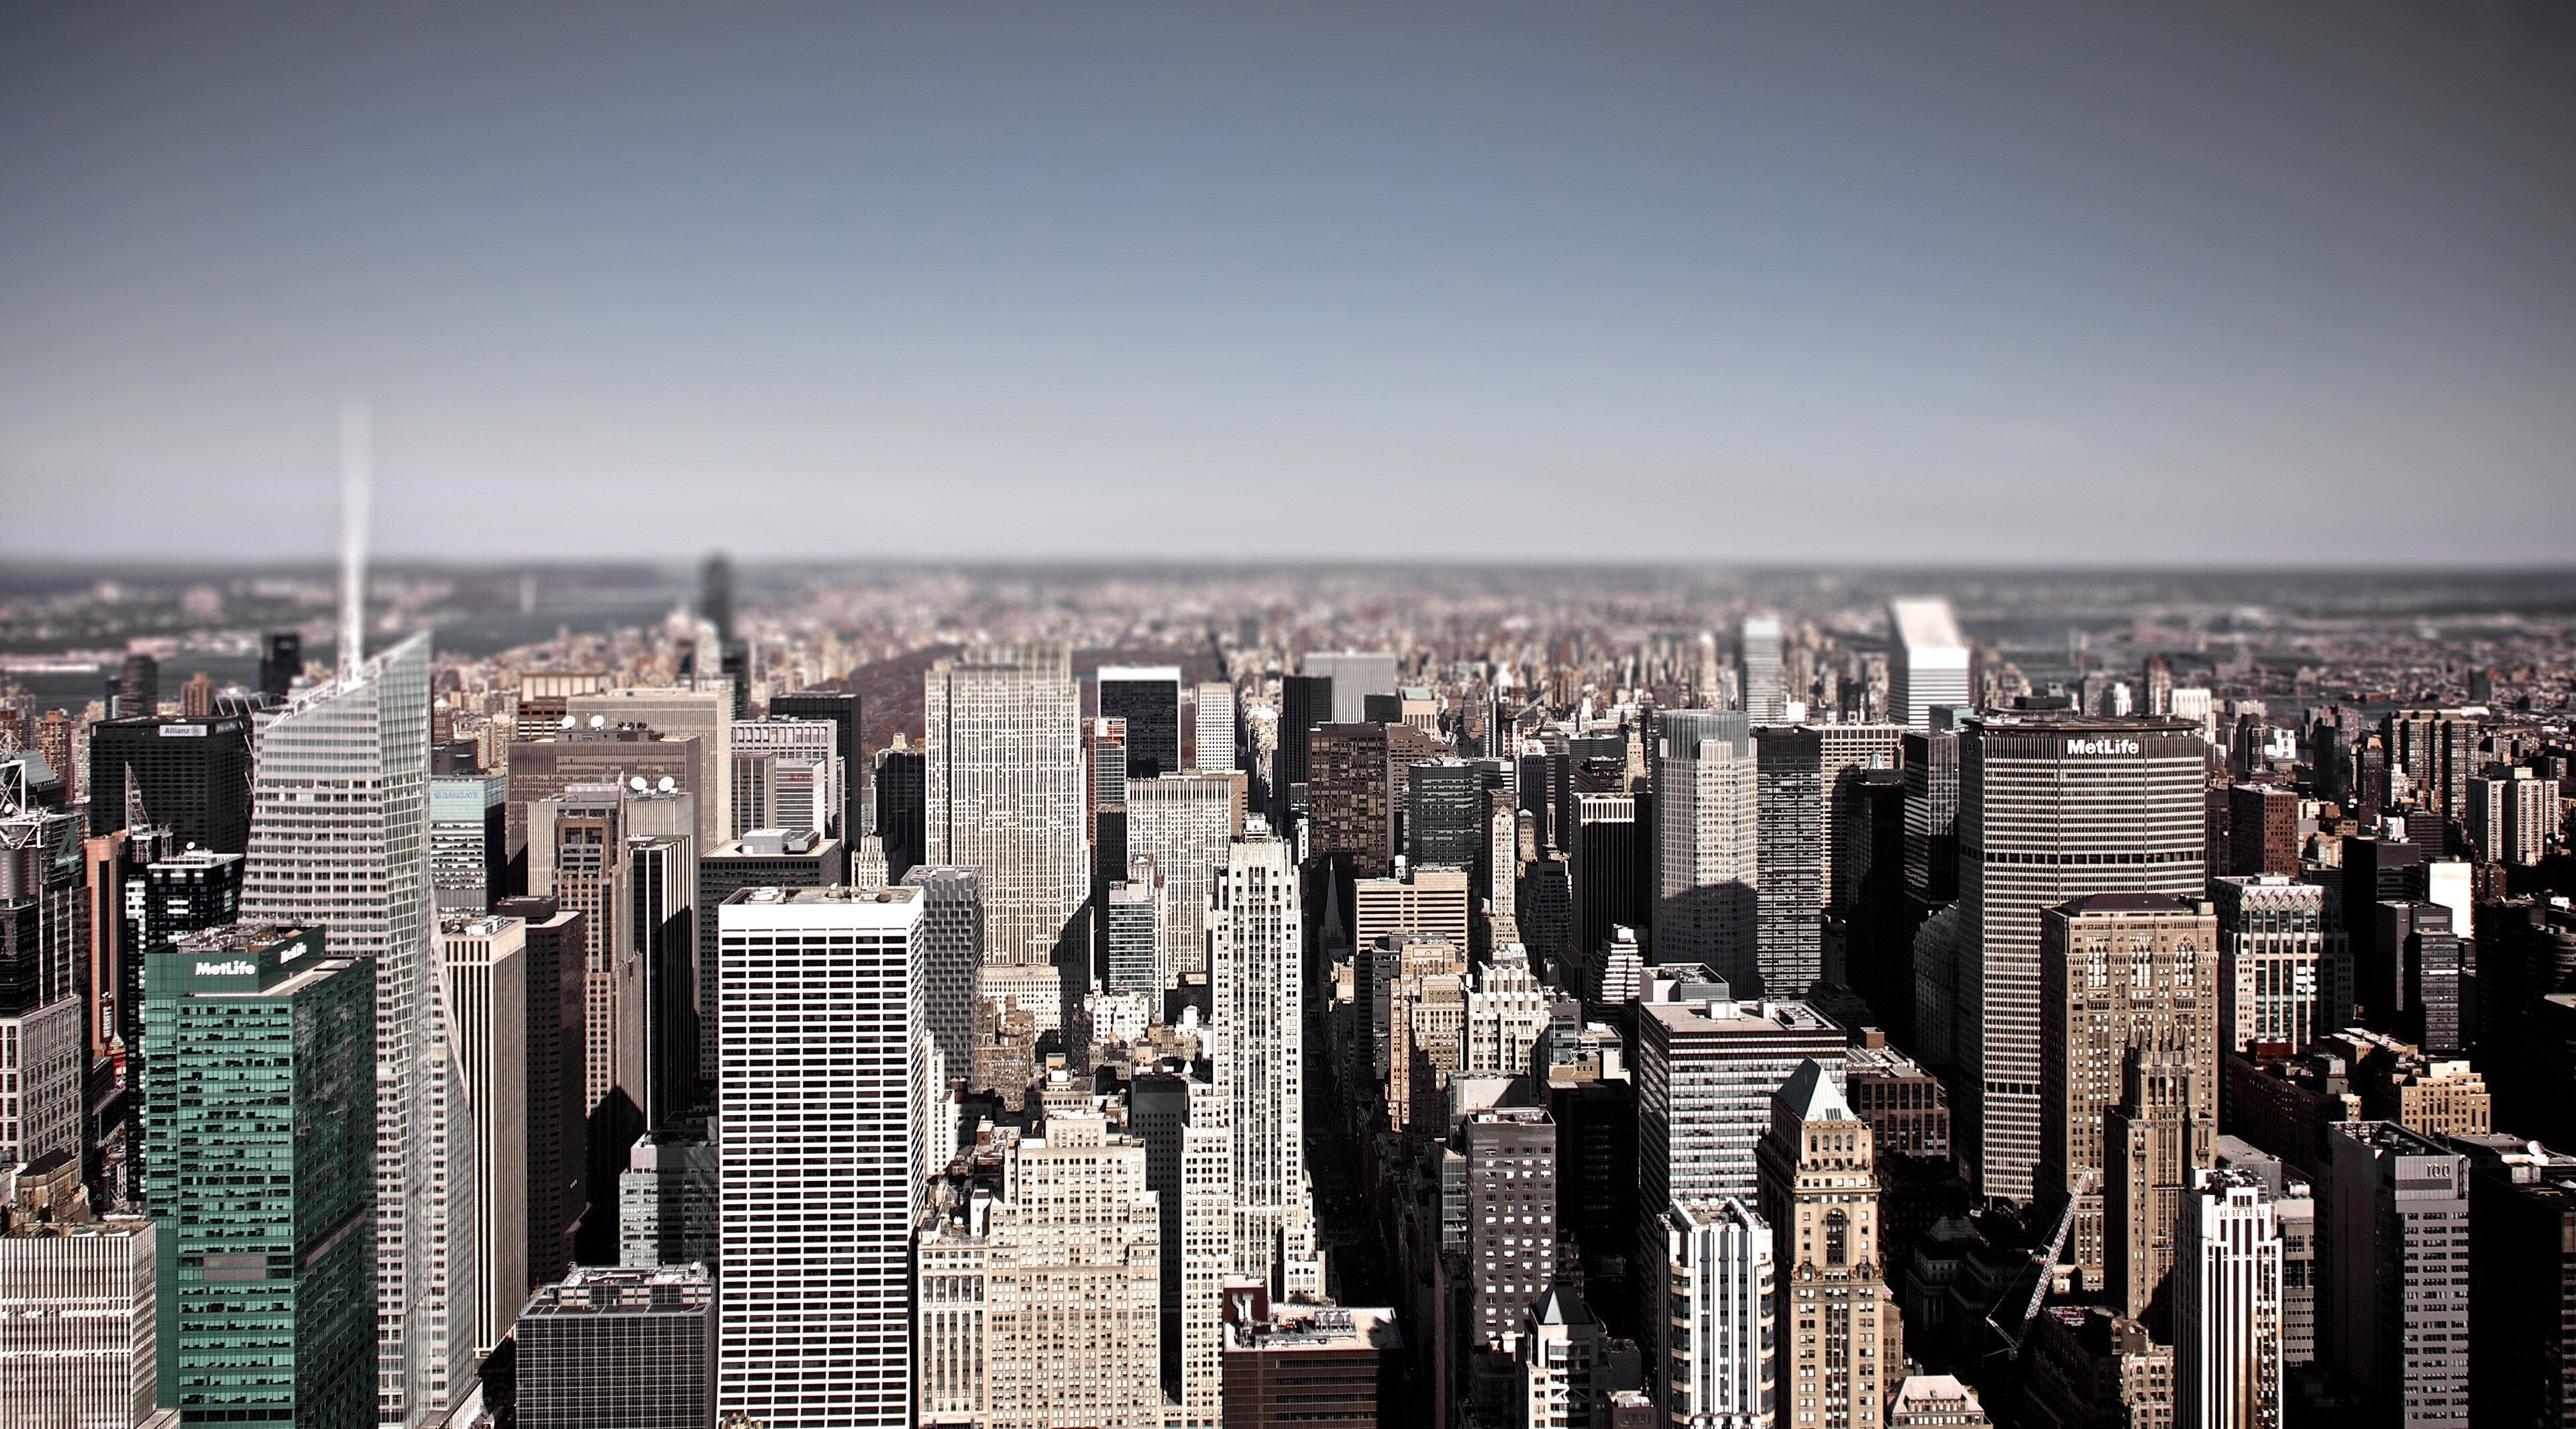 3840x2130 New York City 4k High Quality Wallpaper Island Wallpaper City Pictures City Photography